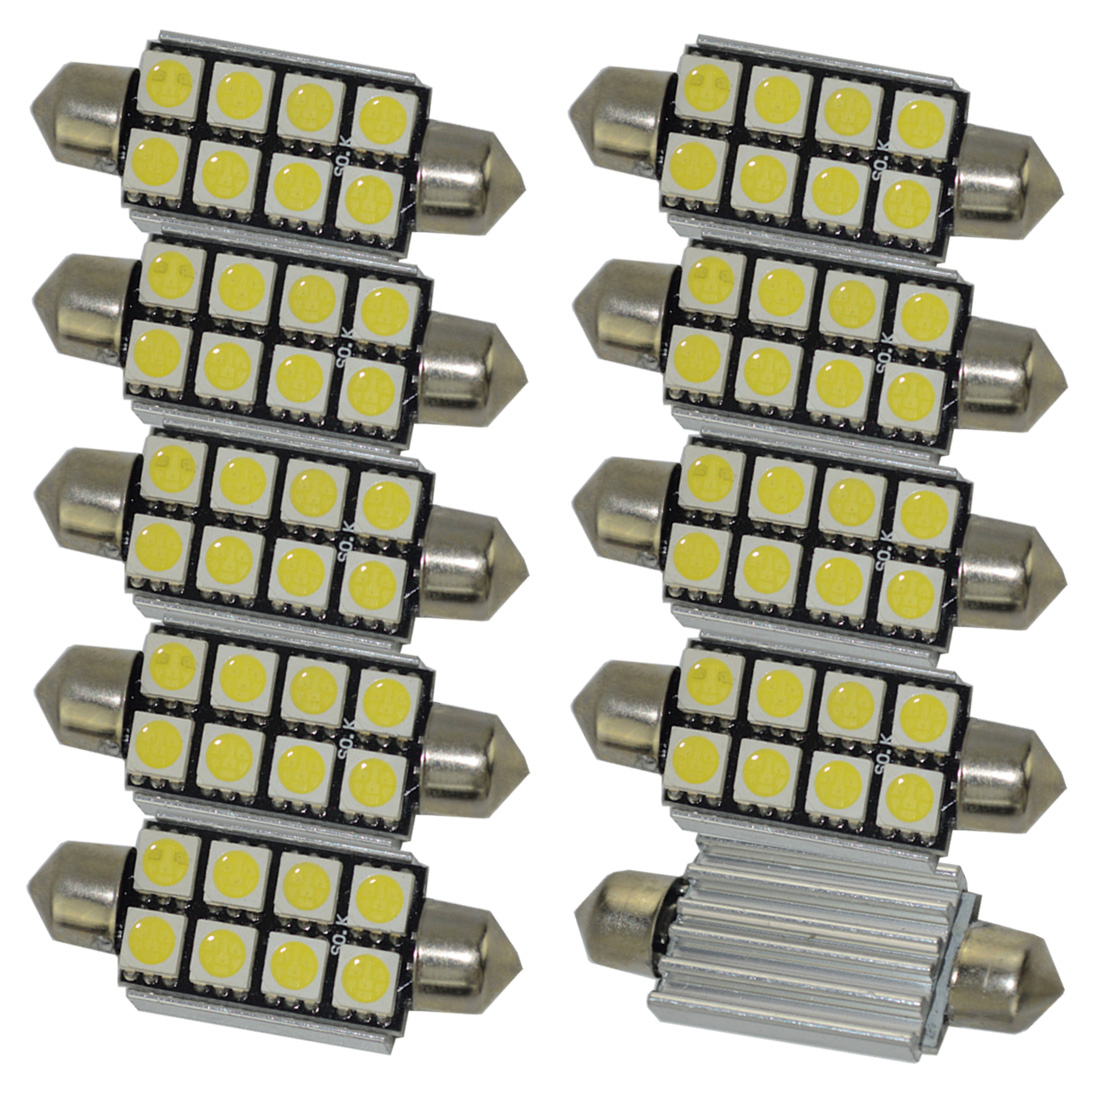 10pcs c5w <font><b>42mm</b></font> <font><b>LED</b></font> Festoon <font><b>Canbus</b></font> Error Free 8 SMD 5050 Car <font><b>LED</b></font> interior Dome Lamps 41mm <font><b>LED</b></font> Bulbs Auto License Plate Lights